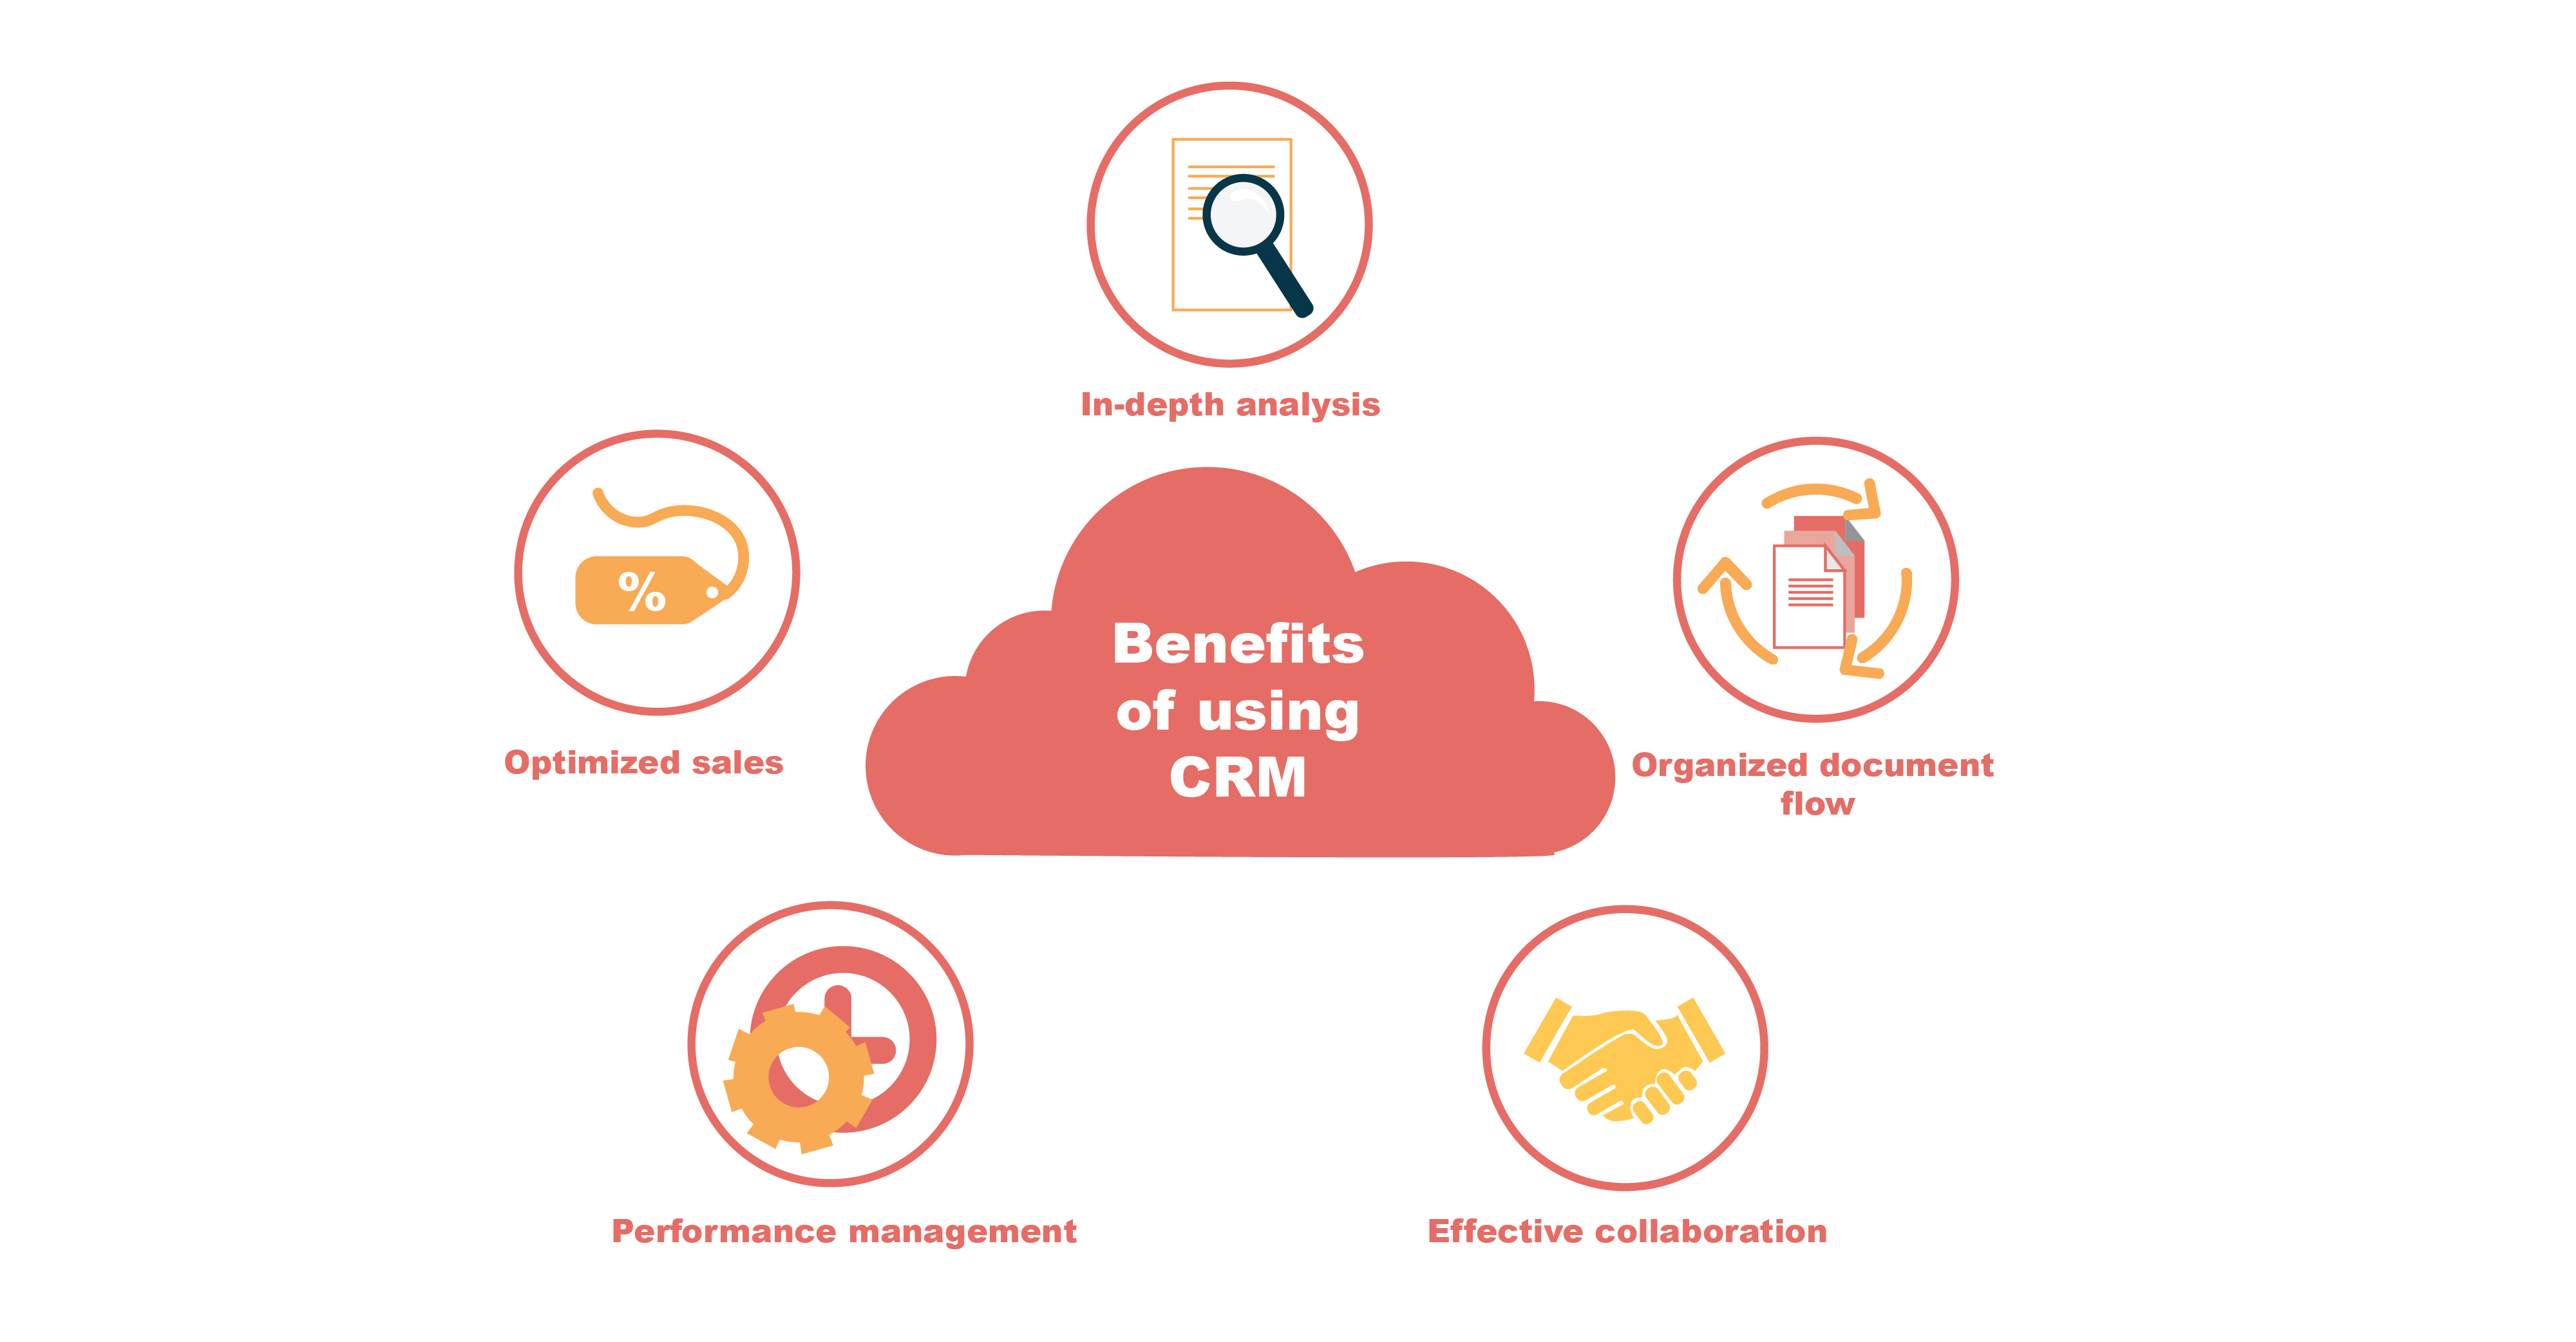 Benefits of using CRM